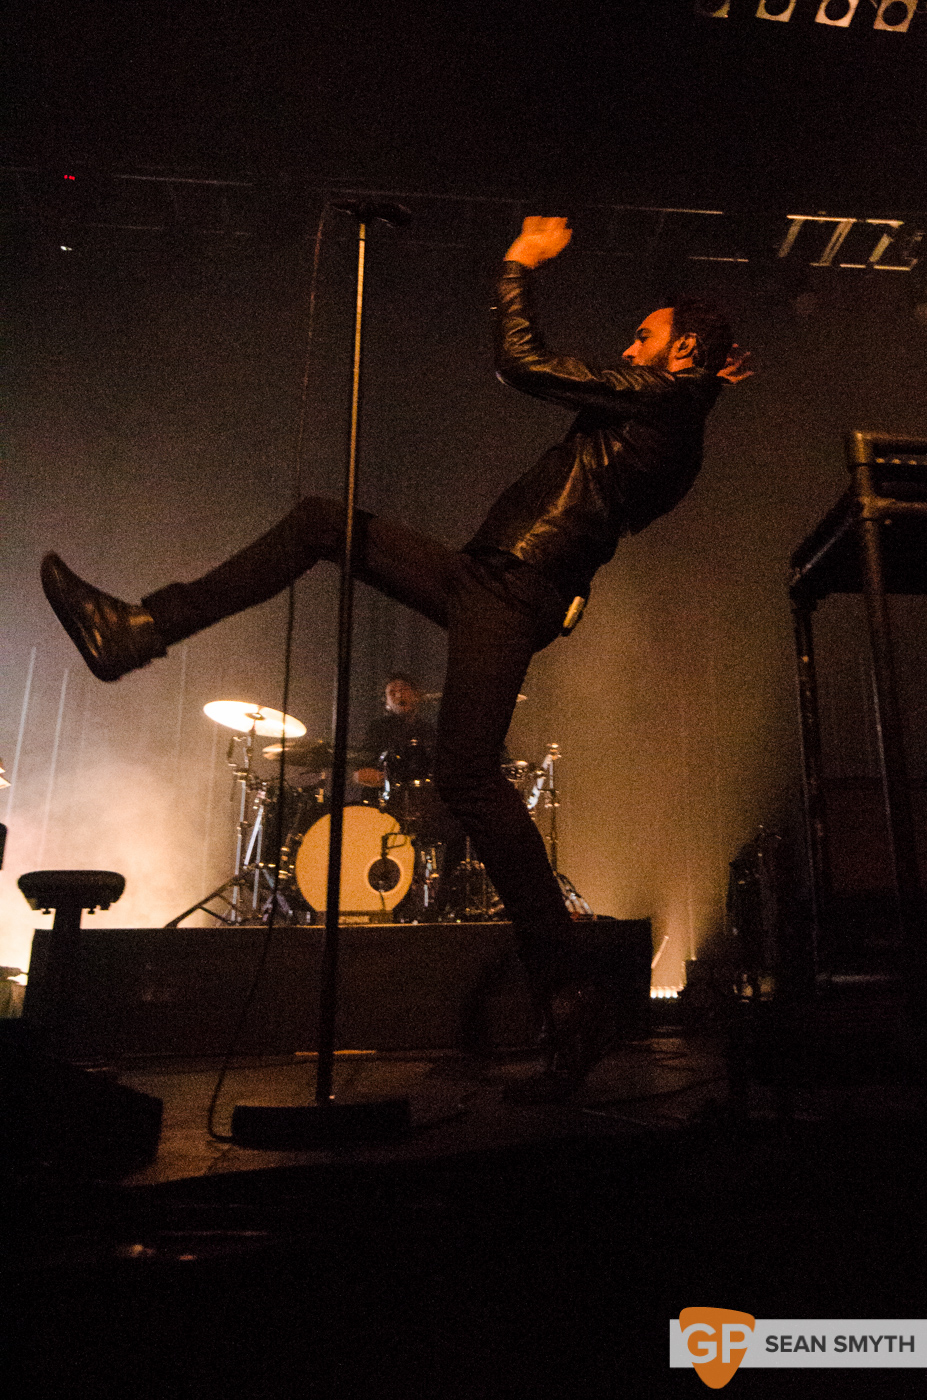 editors-at-the-olympia-theatre-by-sean-smyth-10-10-15-10-of-28_22090441865_o